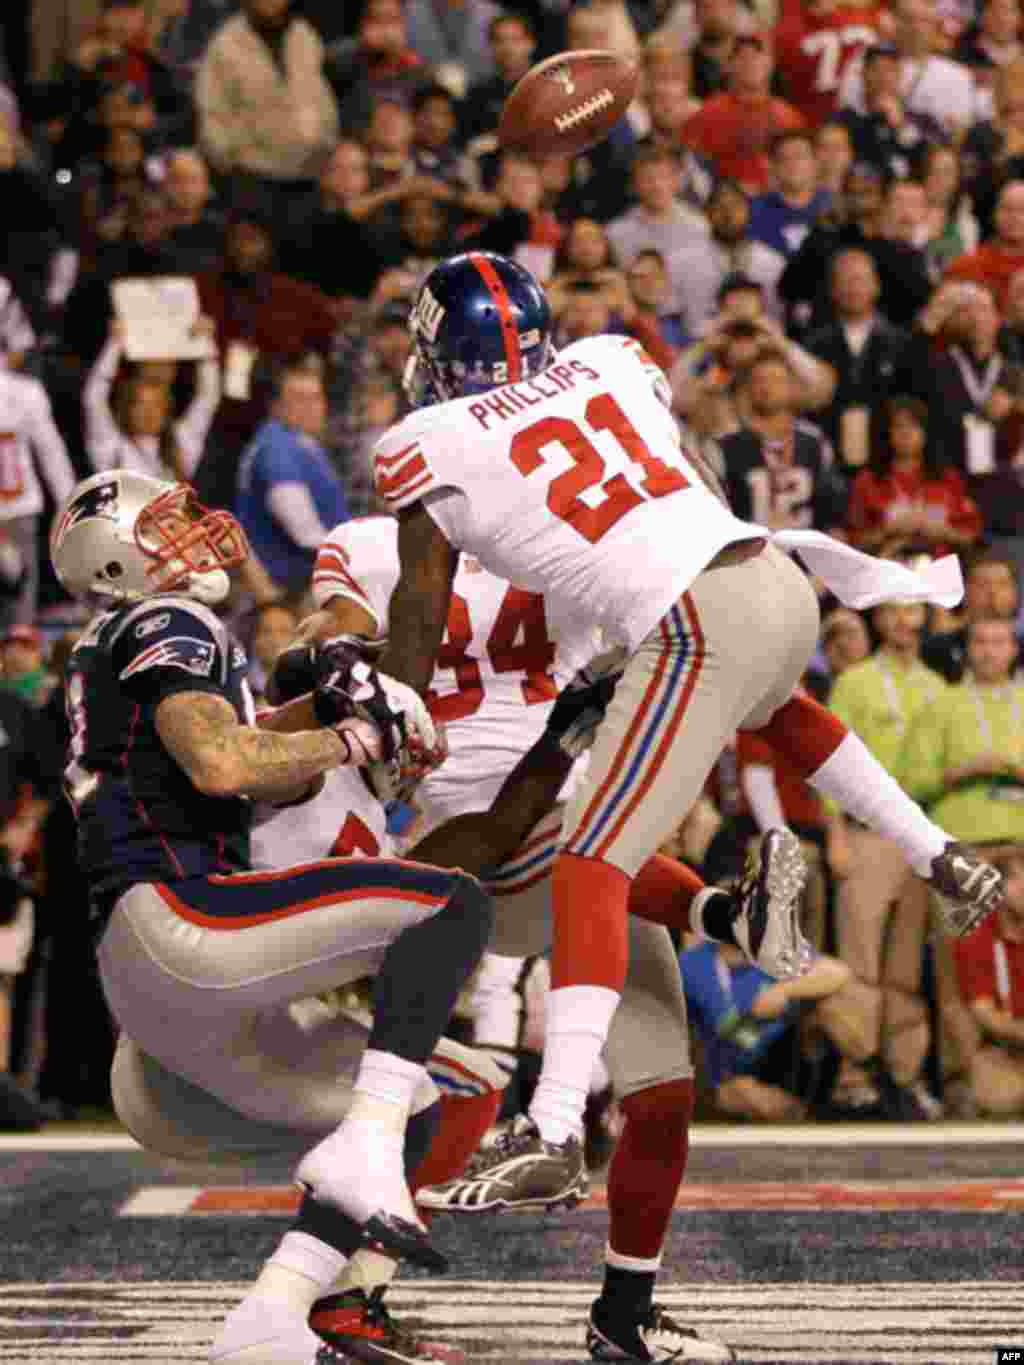 New York Giants safety Kenny Phillips (21) breaks up a pass intended for New England Patriots tight end Aaron Hernandez, left, during the second half of the NFL Super Bowl XLVI football game, February 5, 2012, in Indianapolis, Indiana. (AP)